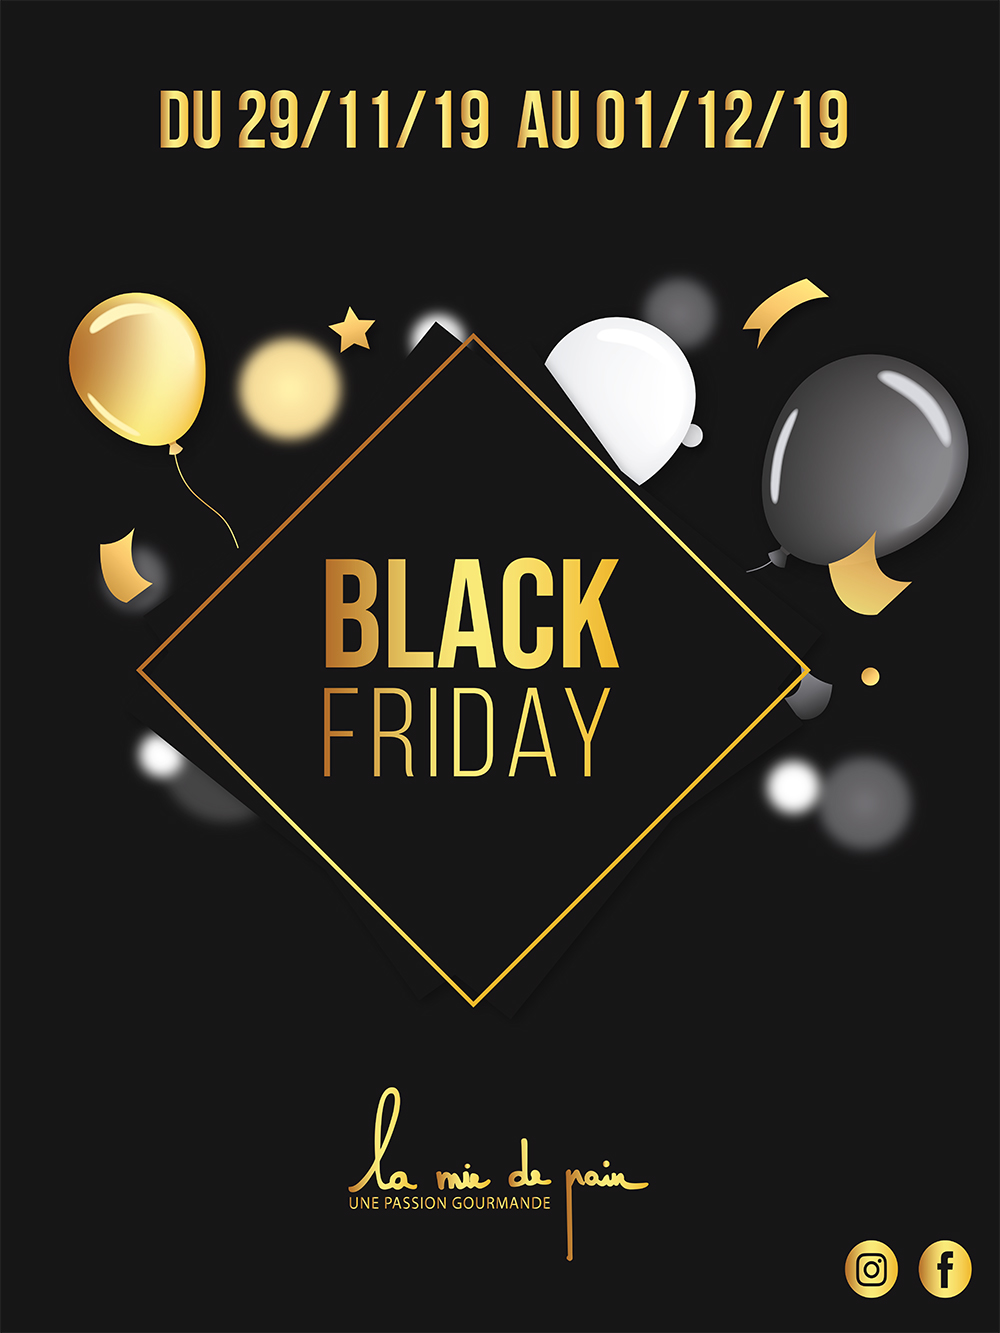 BlackFriday2019-Lamiedepain